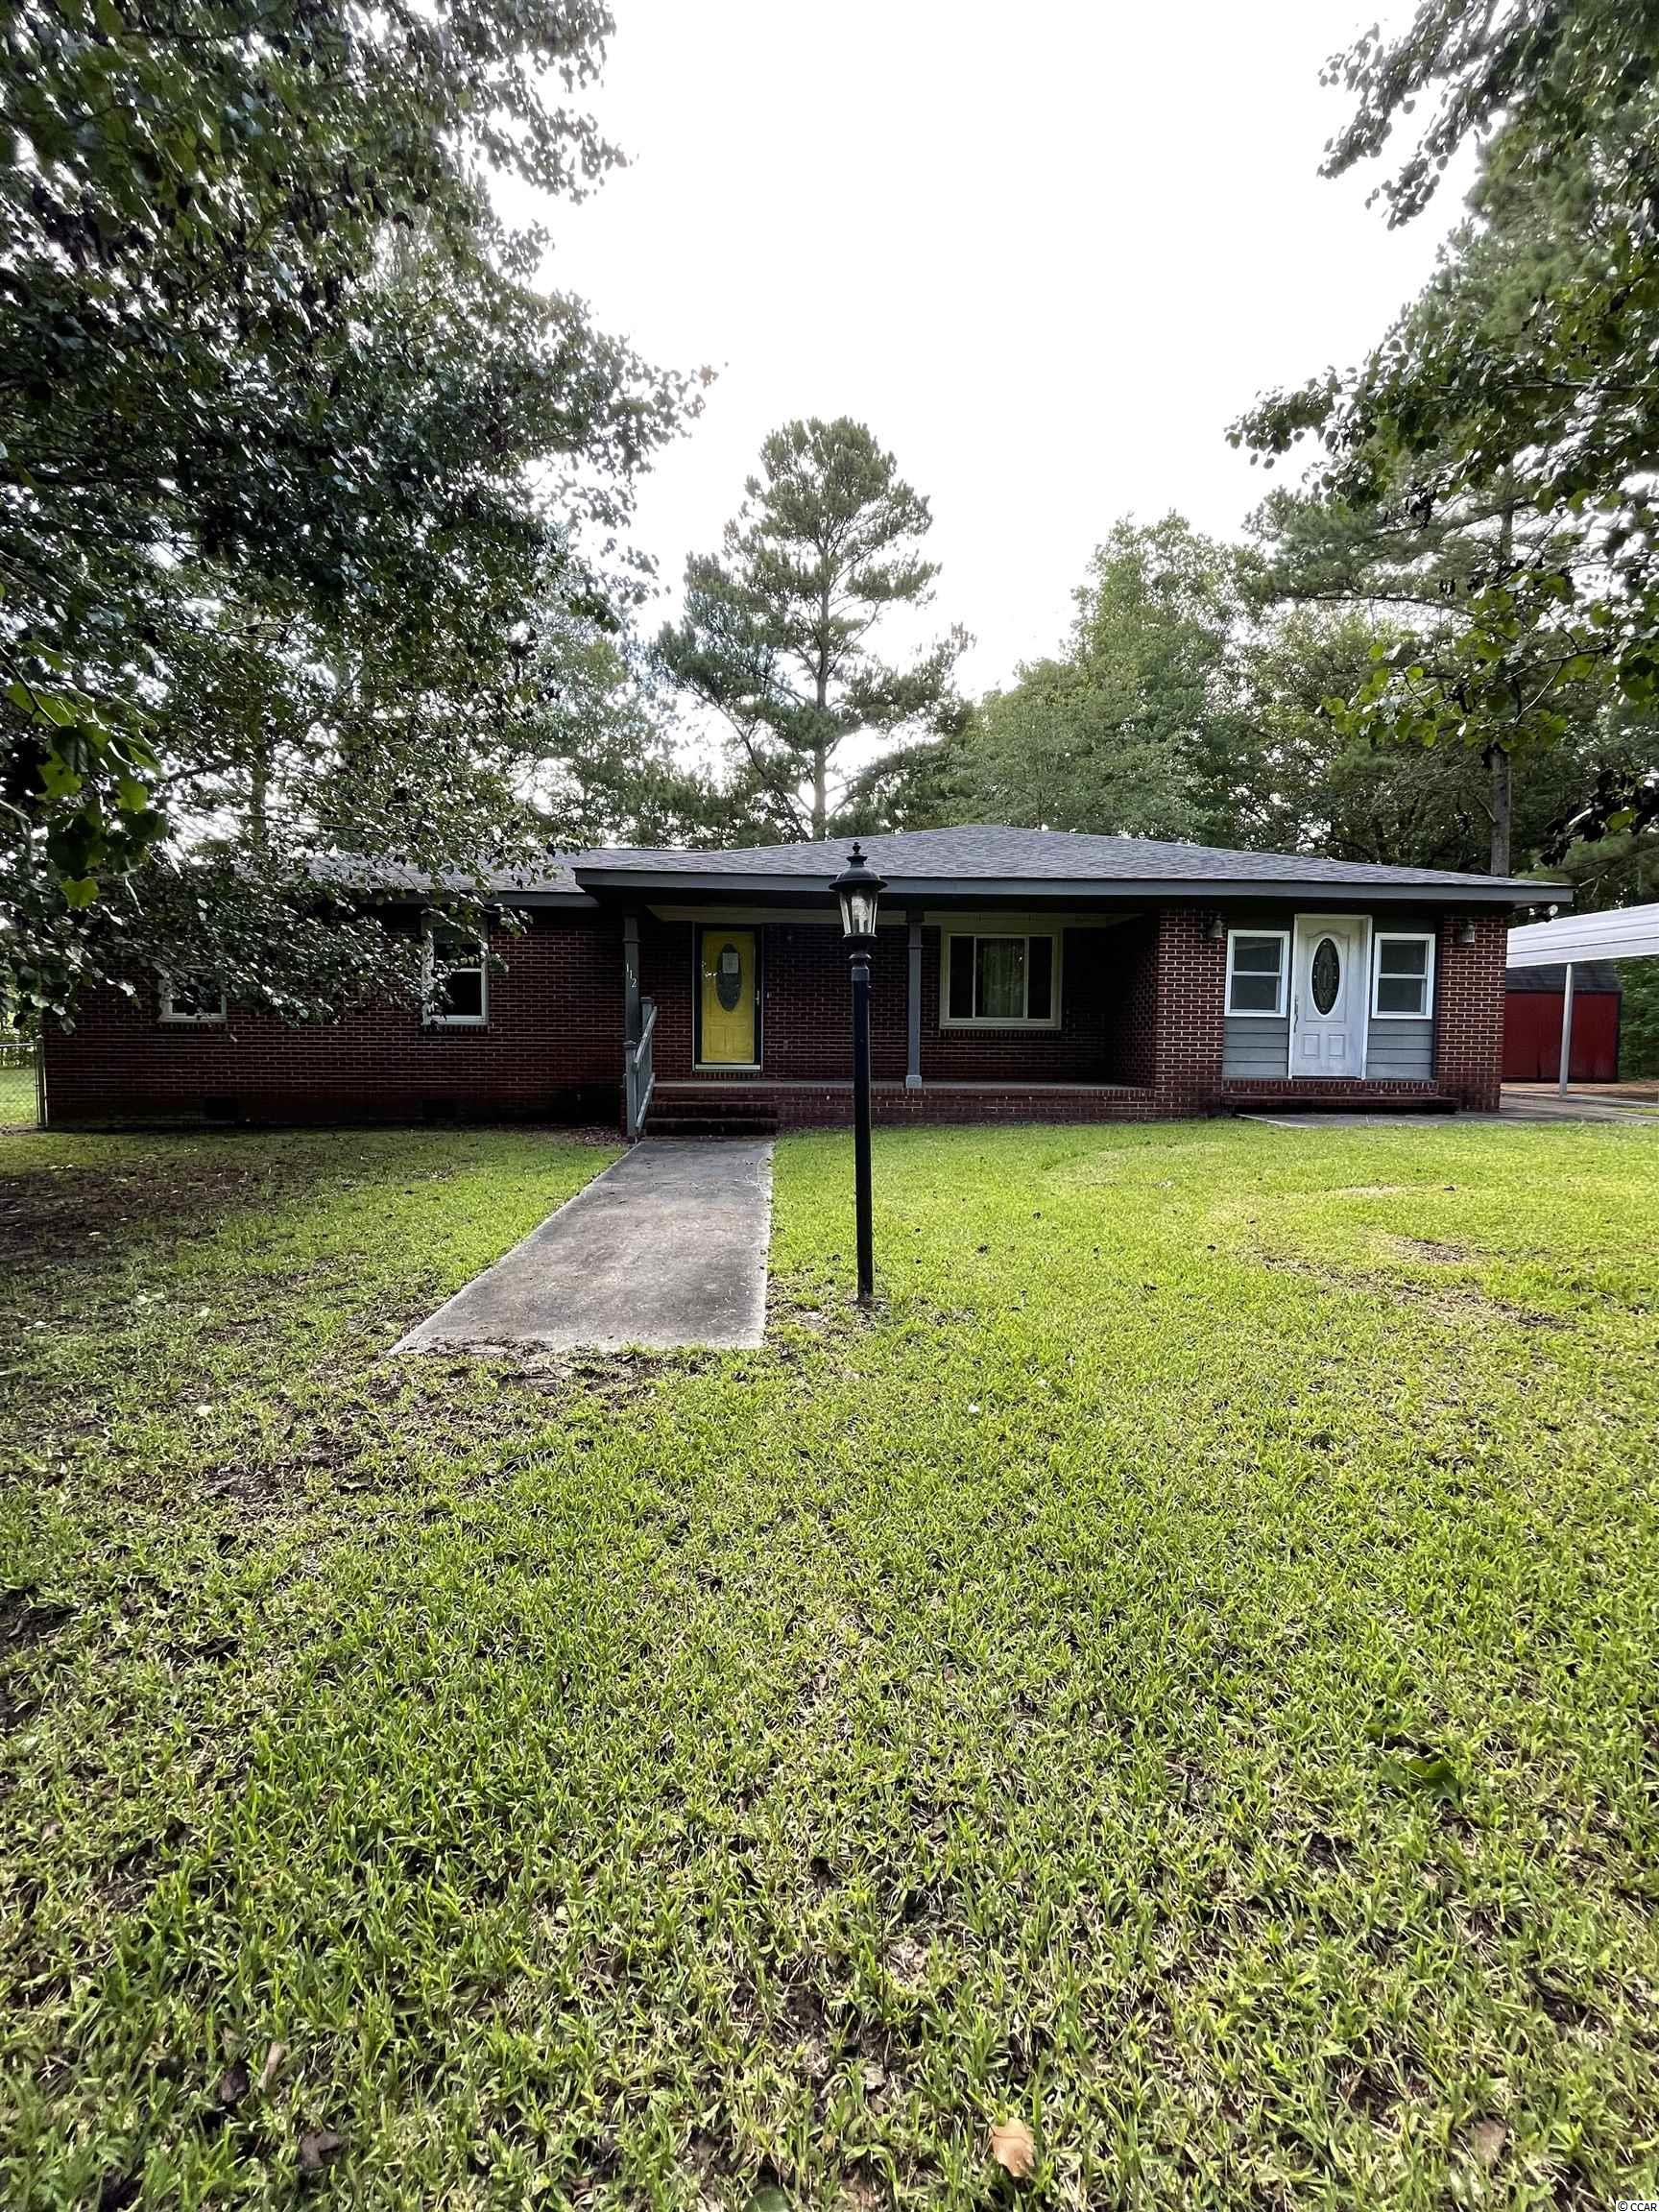 This 3 bedroom 3 bathroom brick home is located on a large lot . This home features a covered front porch, detached carport and detached storage. Property is owned by the US Dept. of HUD,IN, Subject to Appraisal Seller makes no representations or warranties as to property condition.  HUD Homes are sold AS IS Equal Housing Opportunity Seller may contribute towards buyer's closing costs, upon buyer request, ask your agent for more details.